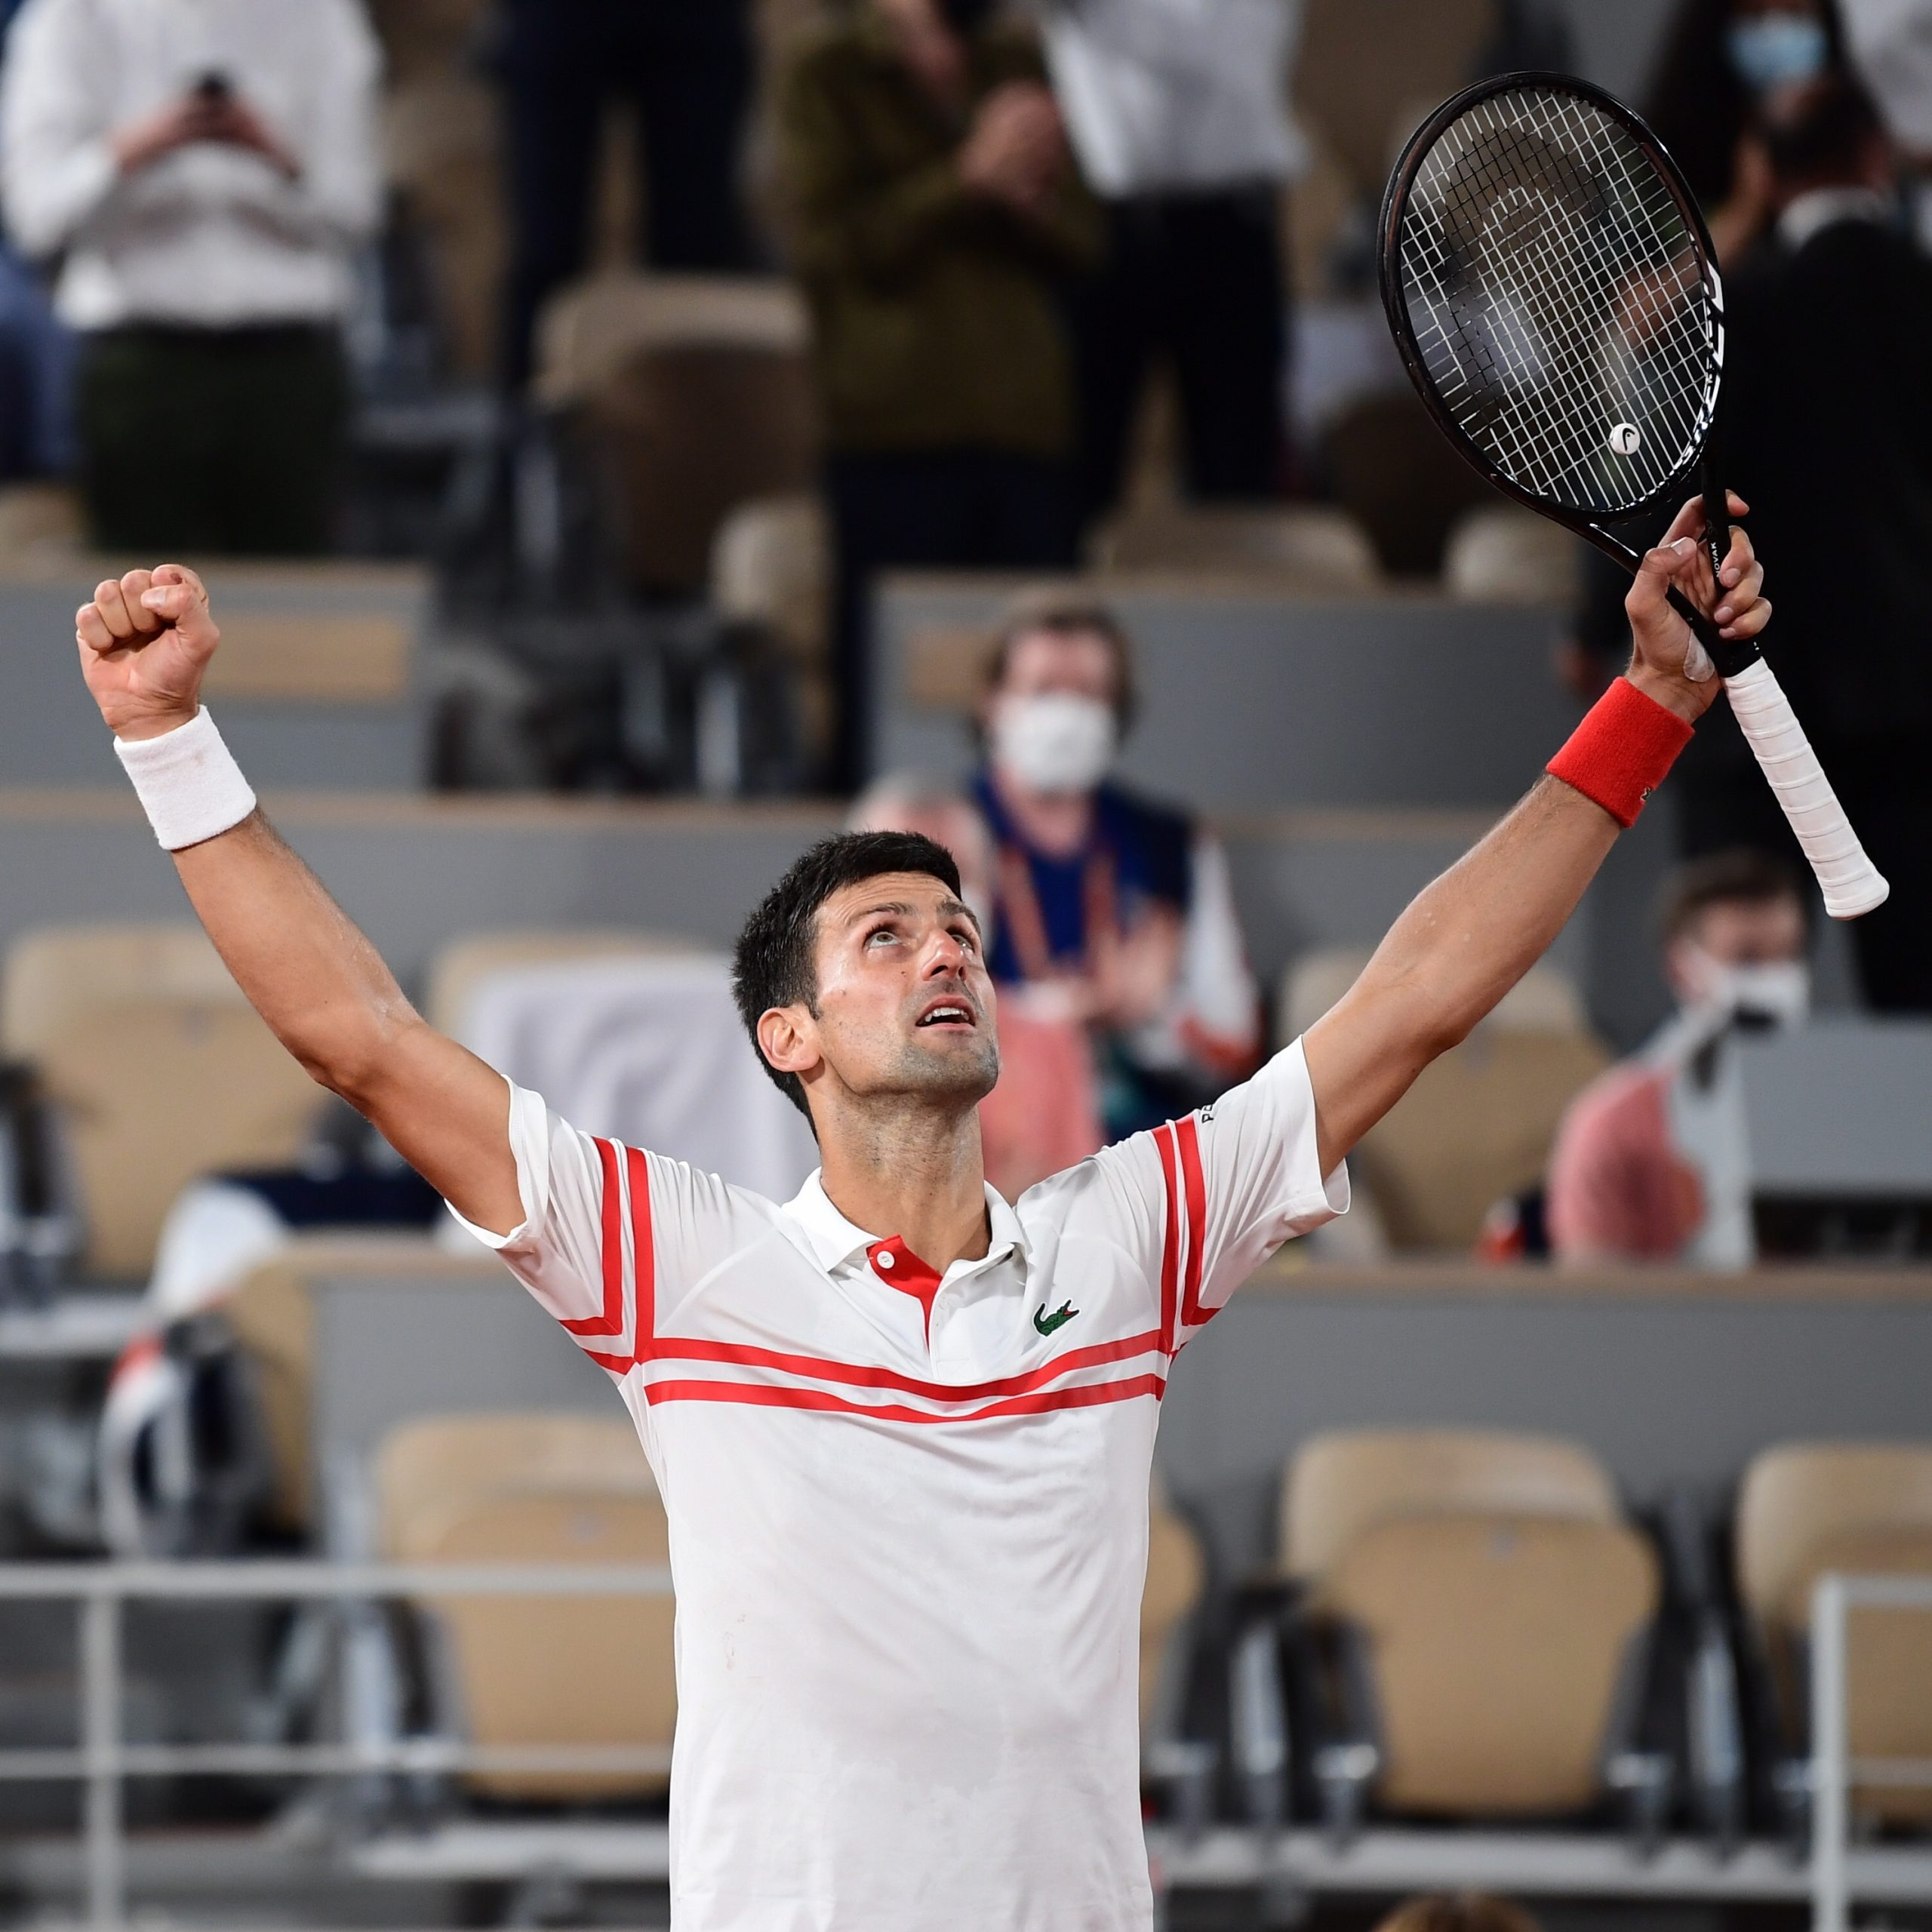 Novak Djokovic reacts after beating Rafael Nadal at the French Open 2021 (Credits: Roland Garros Twitter)